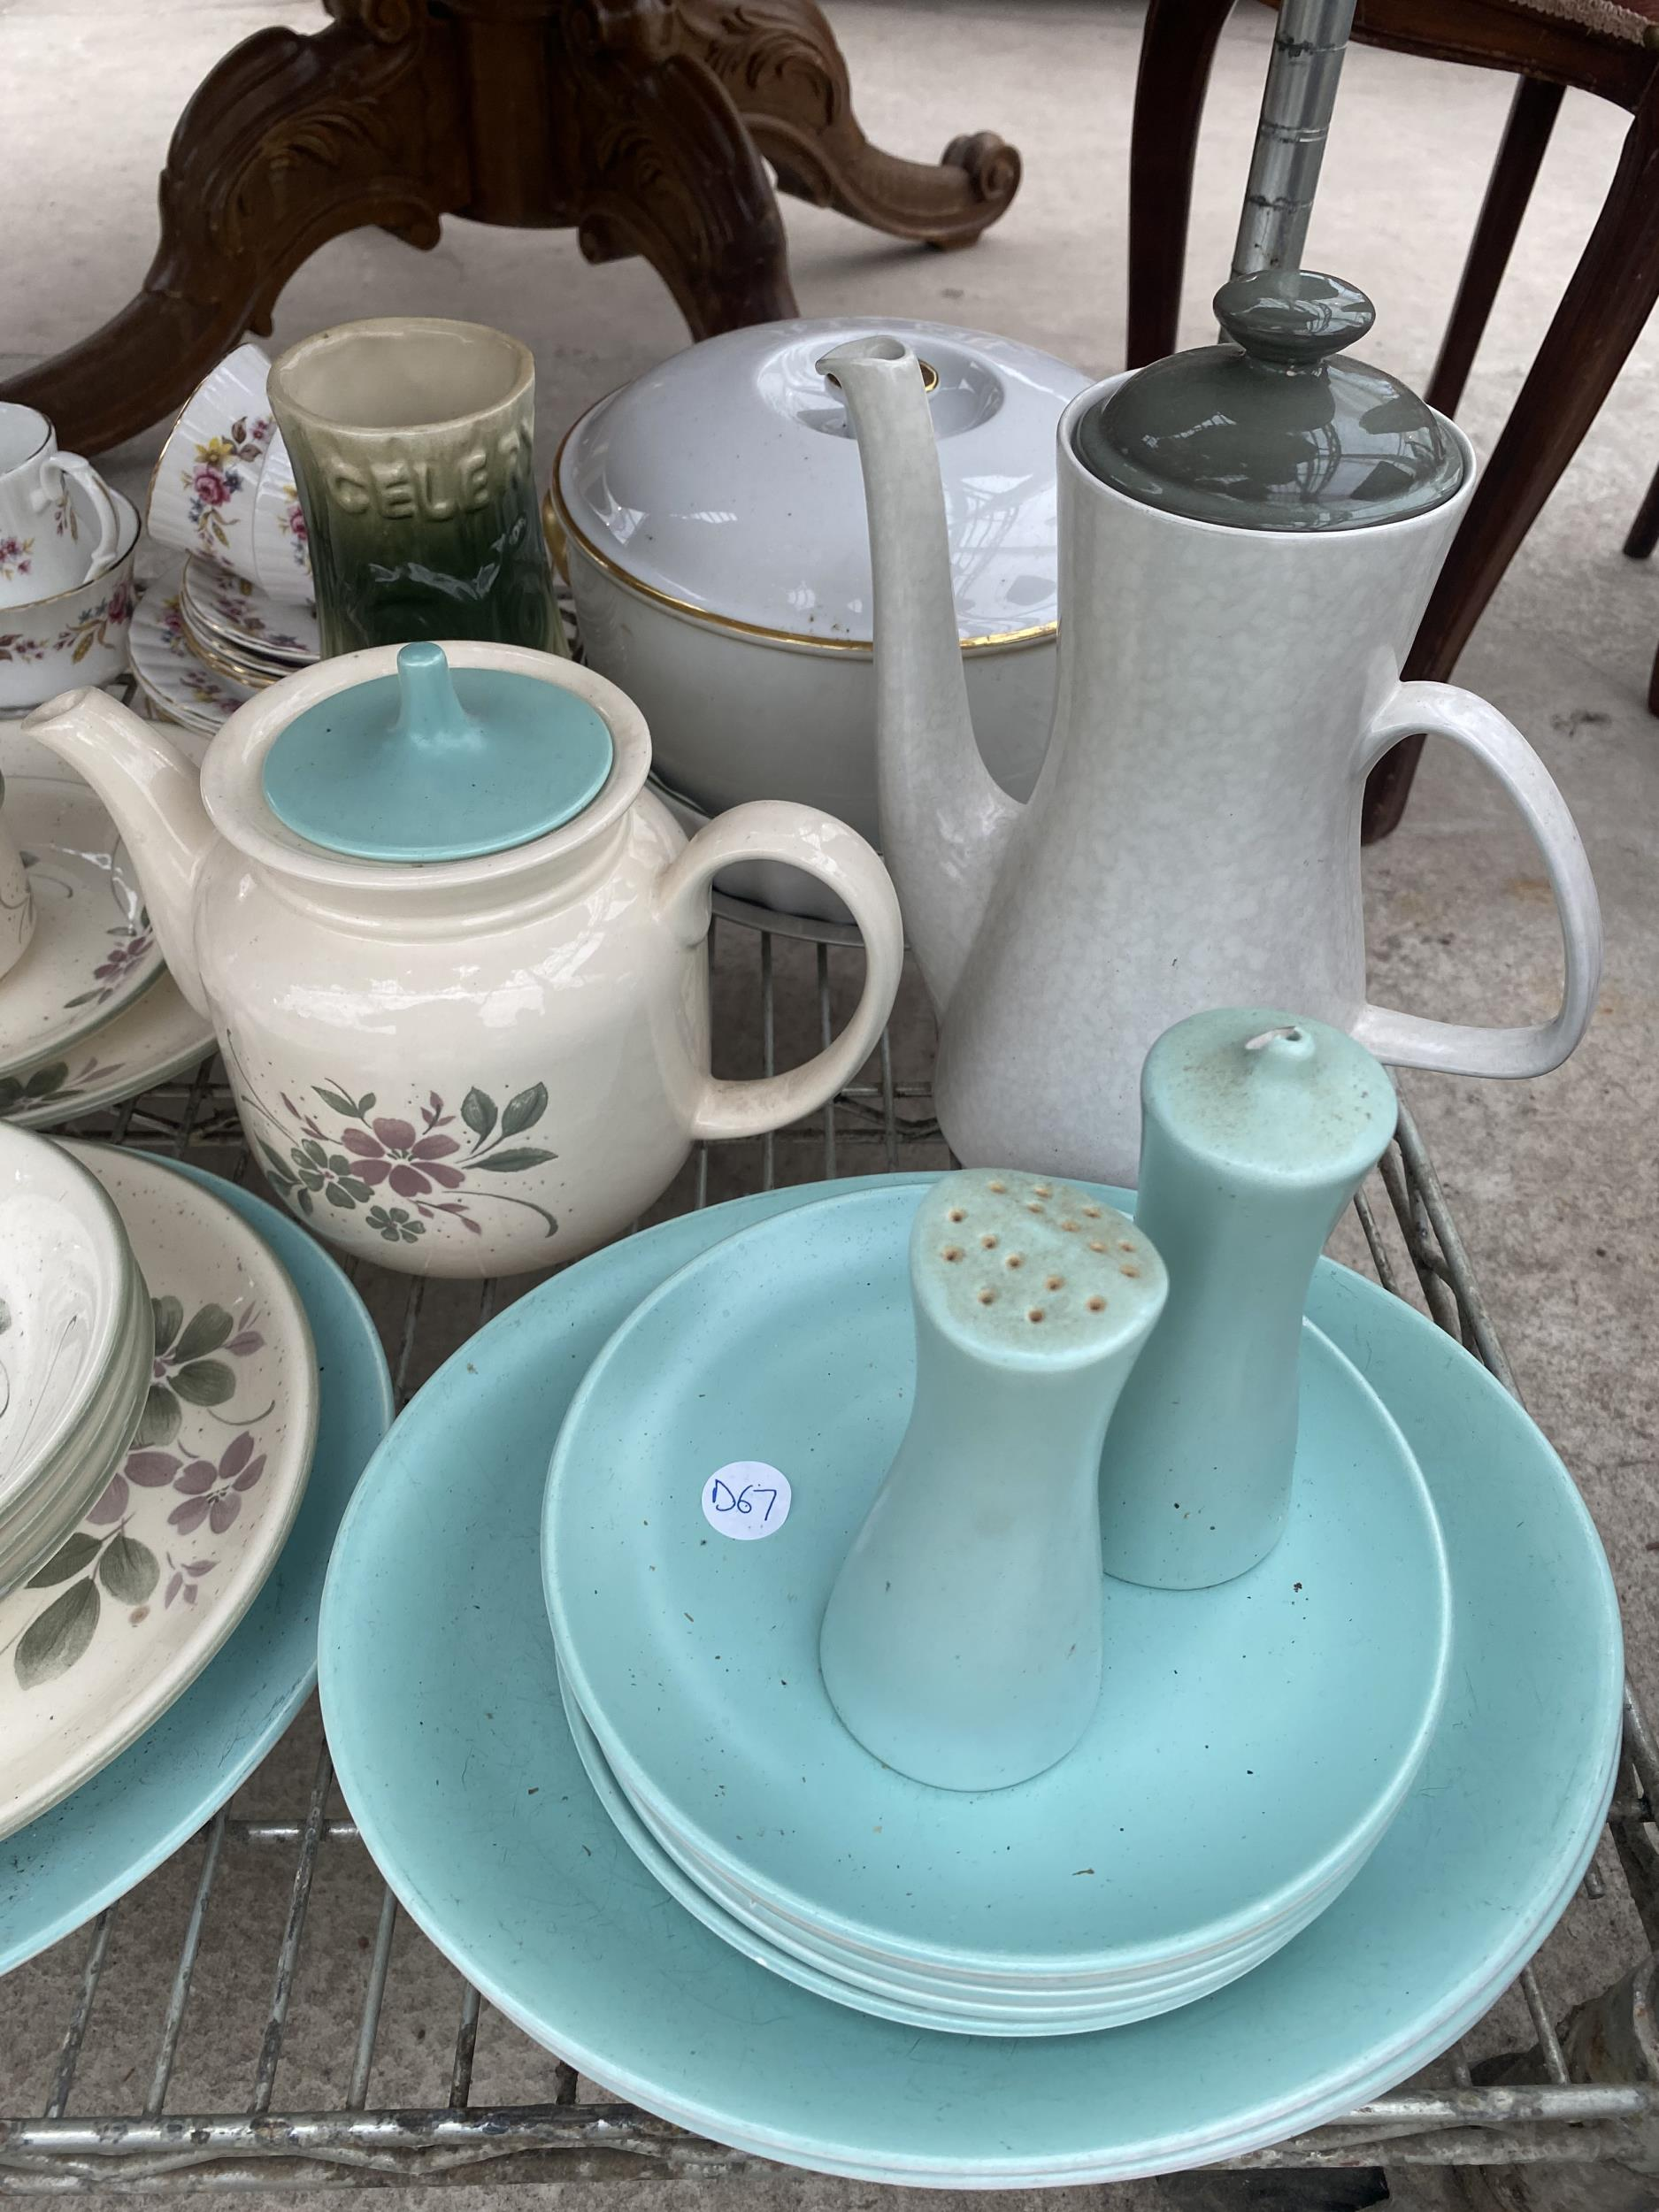 AN ASSORTMENT OF CERAMIC WARE TO INCLUDE PLATES, JUGS, AND TRIOS ETC - Image 2 of 4